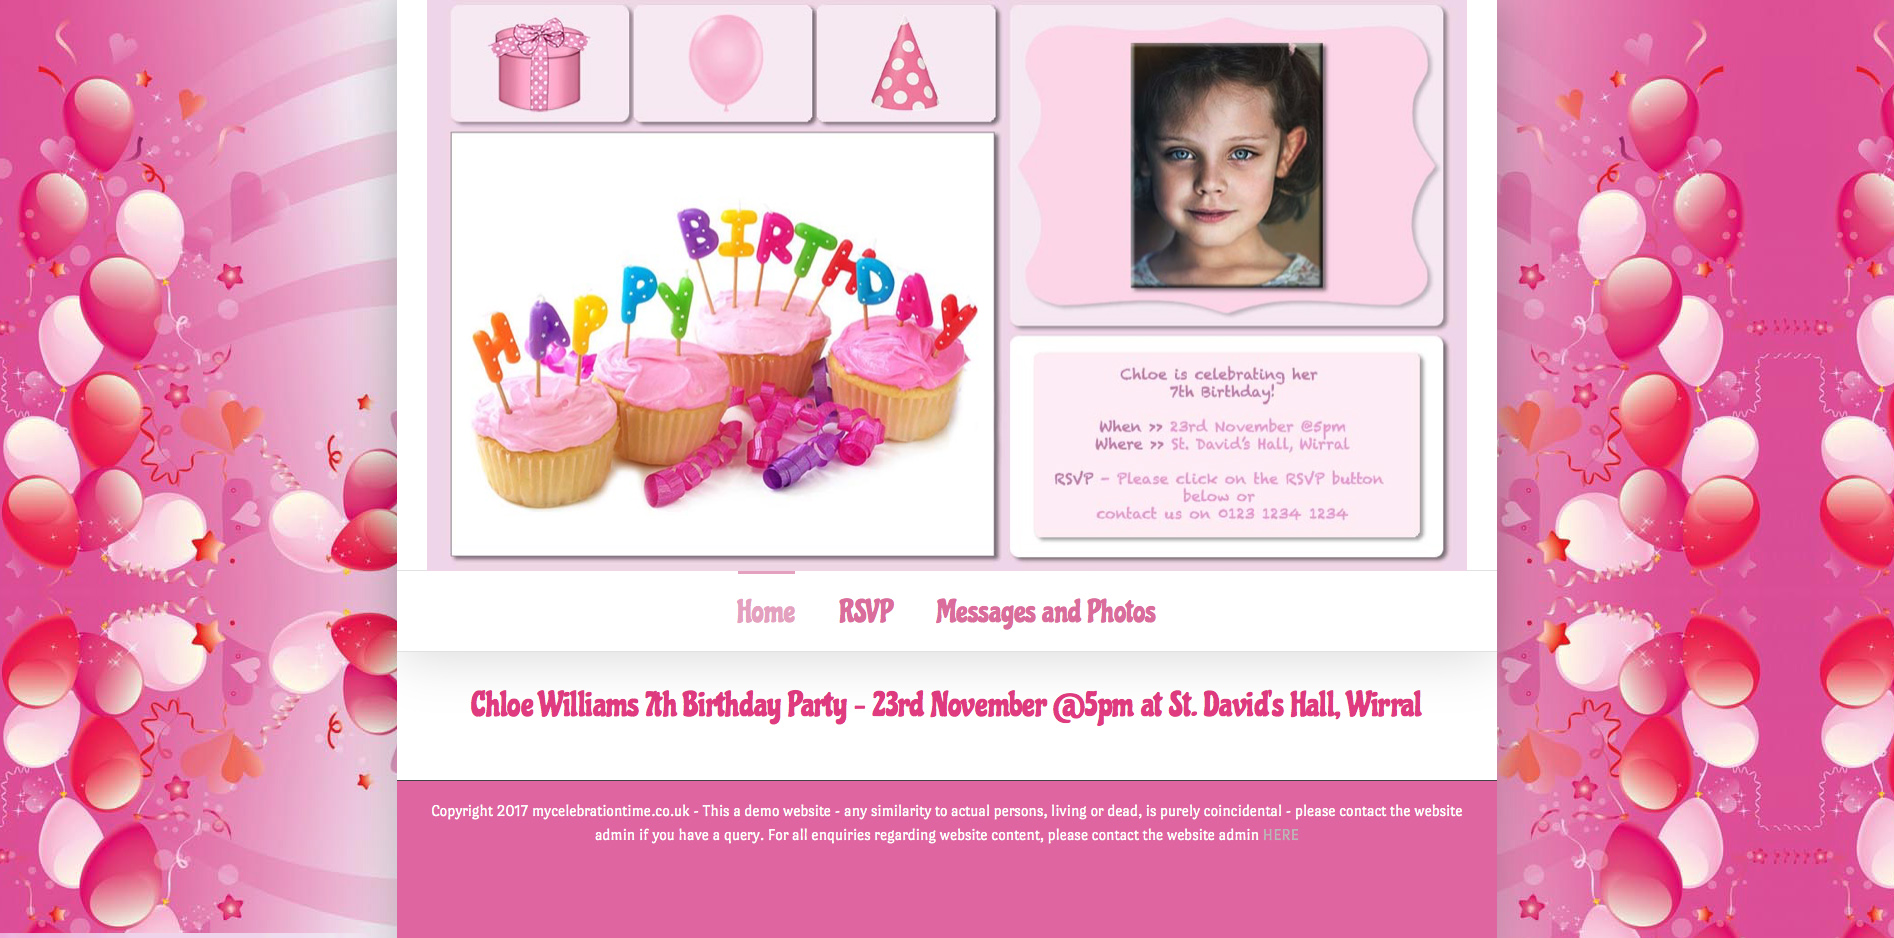 Party Website Pink Balloons